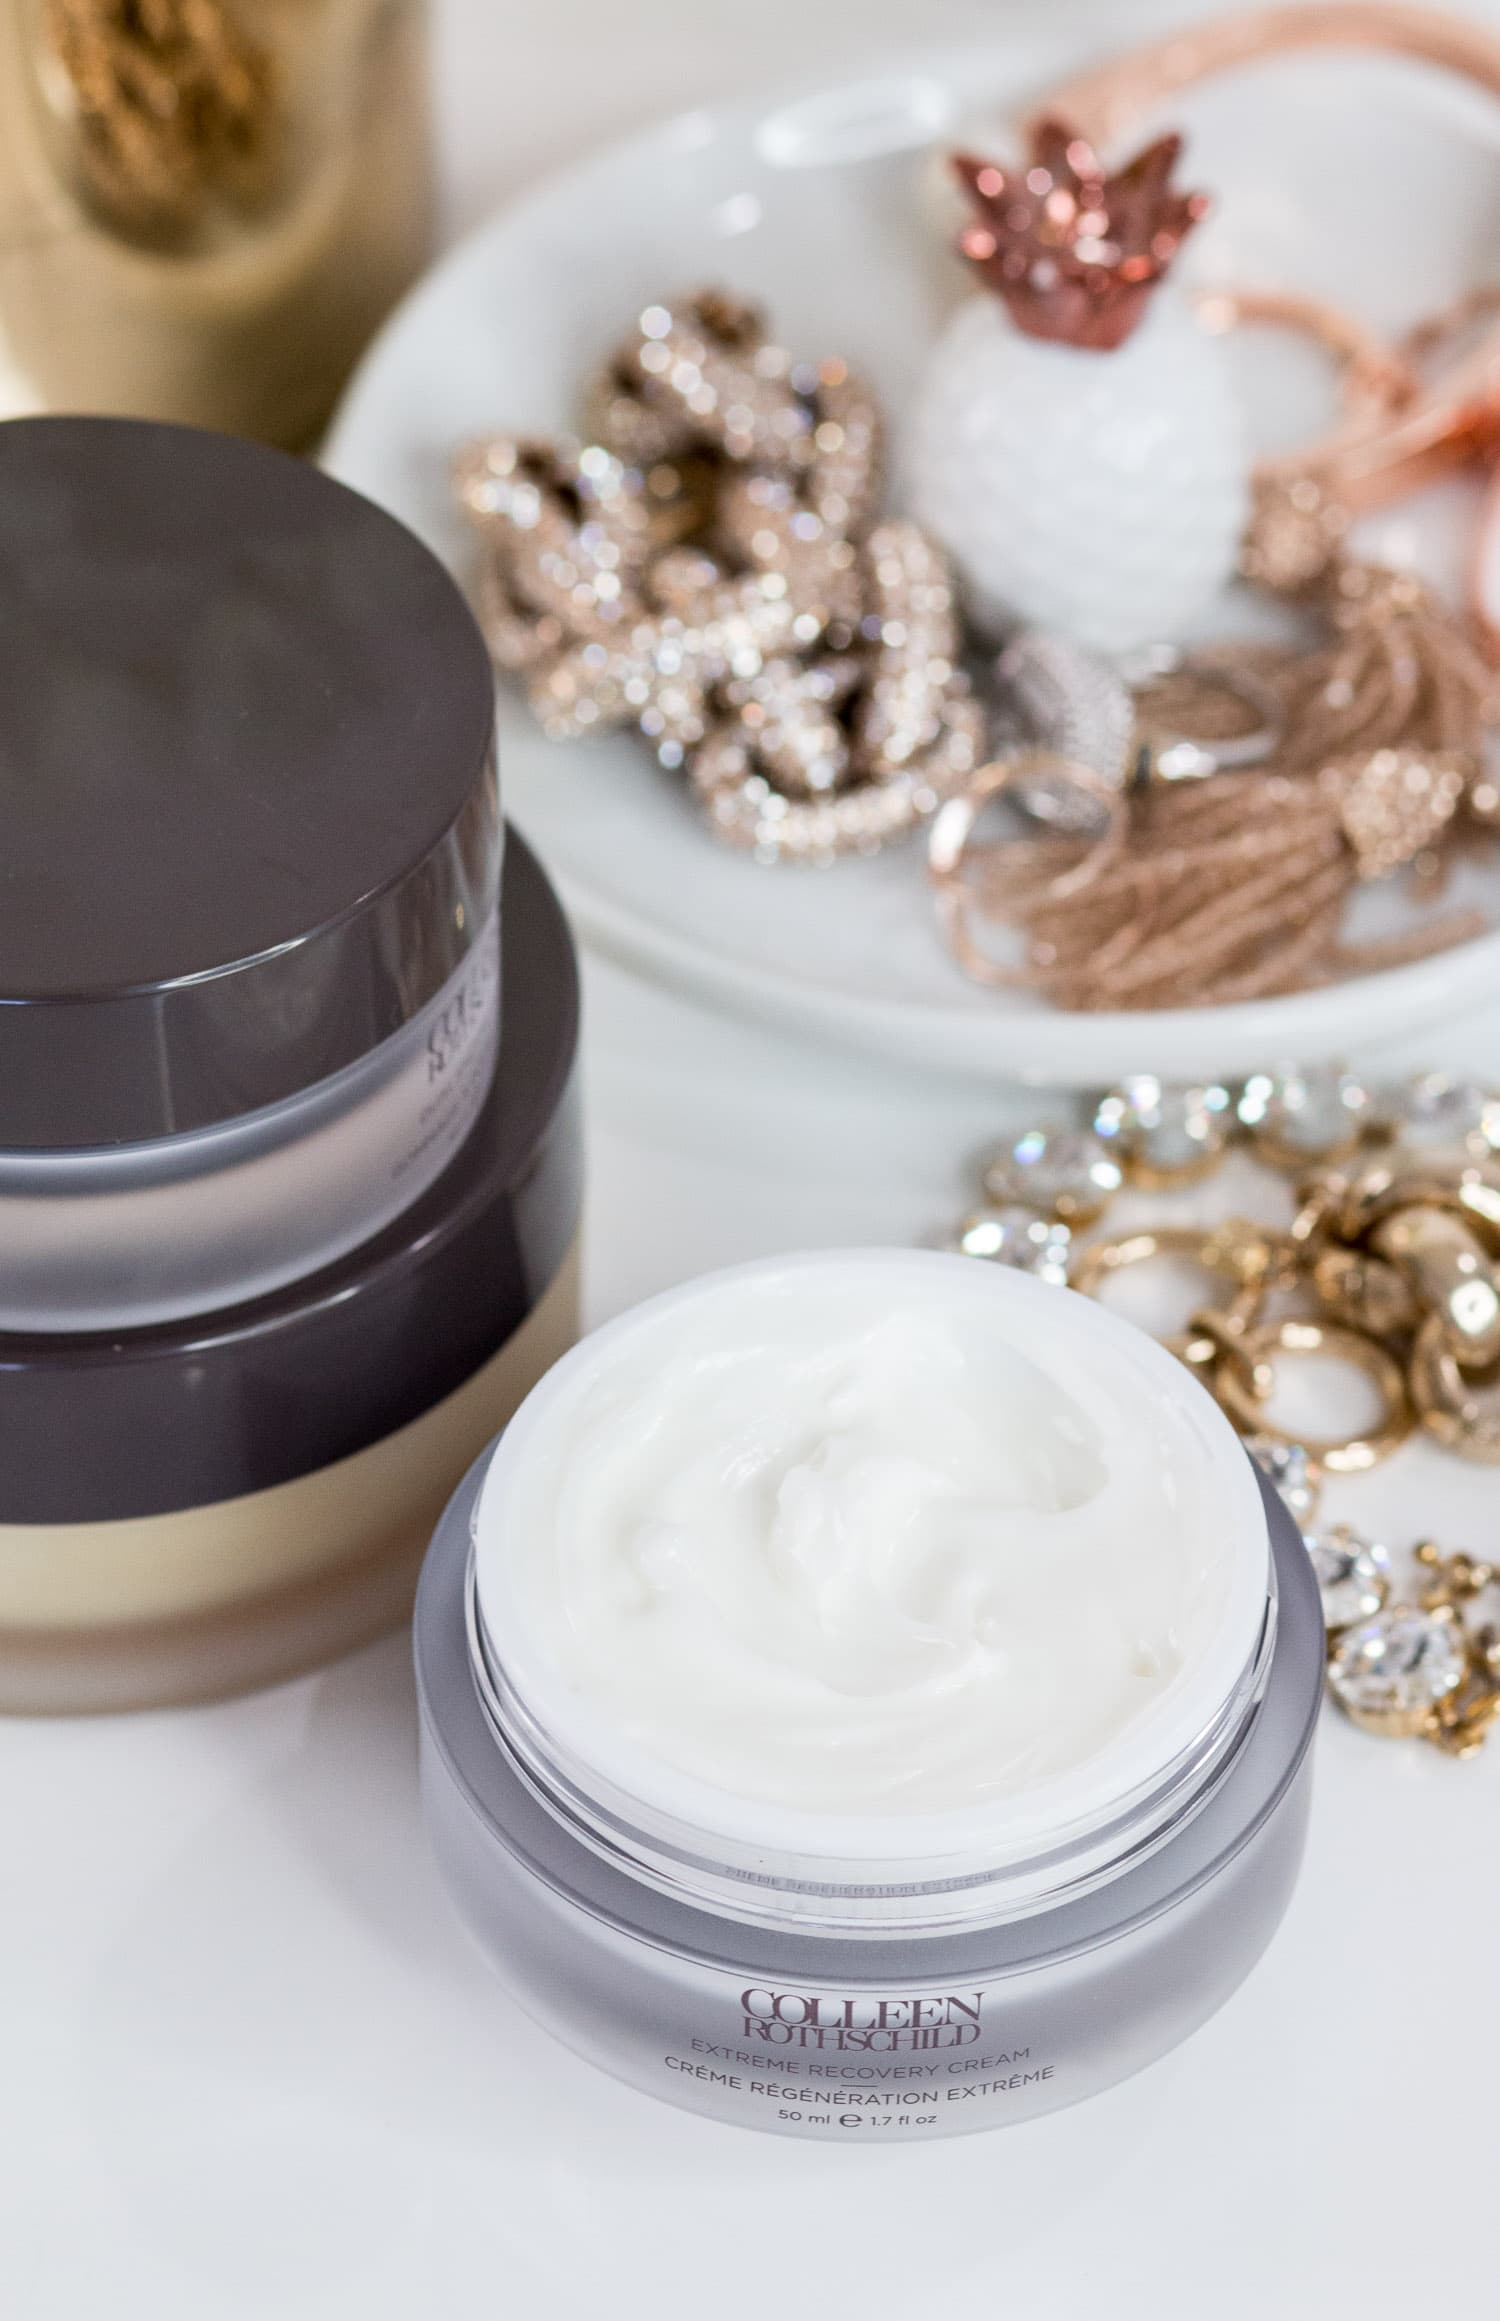 The best moisturizer for dry skin + a review of Colleen Rothschild Extreme Recovery Cream | The seven skin care products that every woman needs in her beauty routine + the best skin care products from Colleen Rothschild Beauty with Orlando, Florida beauty blogger Ashley Brooke Nicholas